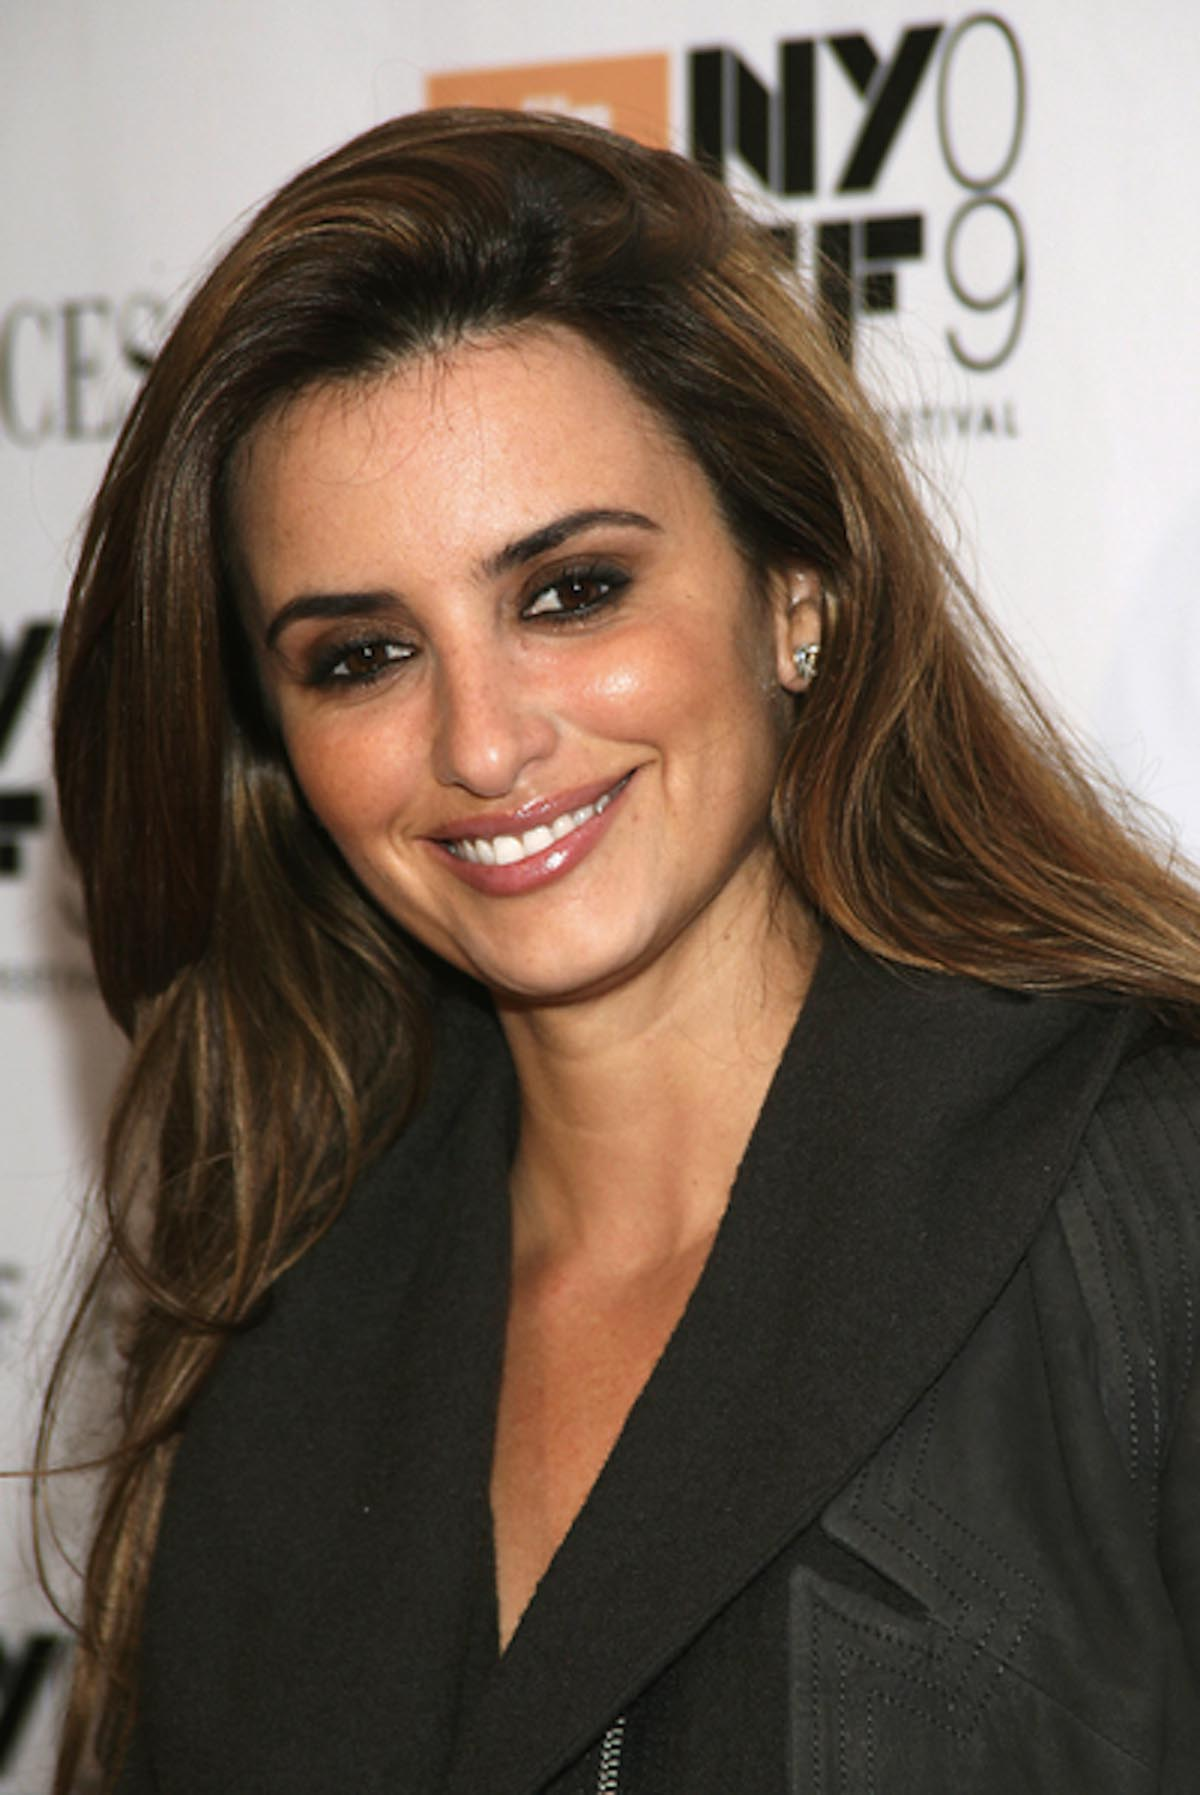 Fashionable Actress Penelope Cruz | YusraBlog.